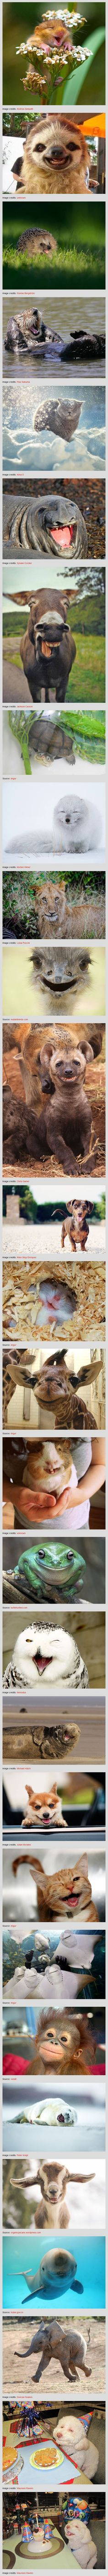 The 30 Happiest Animals In The World That Will Make You Smile - all the funny animal photos